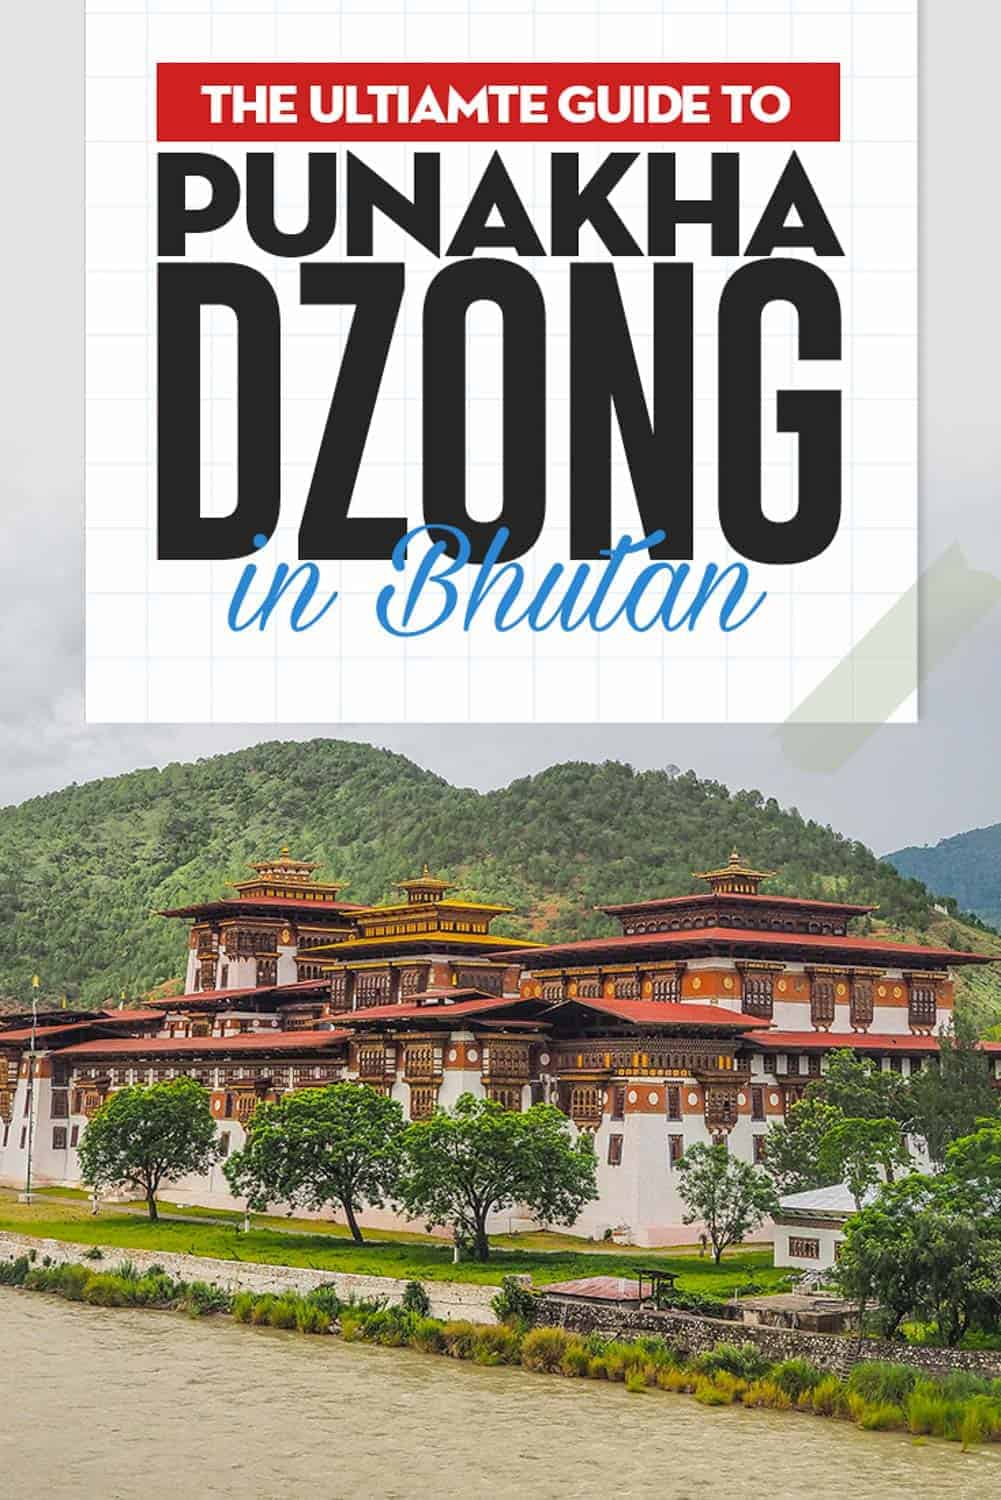 The Punakha Dzong are majestically standing on an island between the confluence of the Pho Chhu and Mo Chhu rivers, the city's dzong is one of the most photogenic of all Bhutan's ancient fortresses.